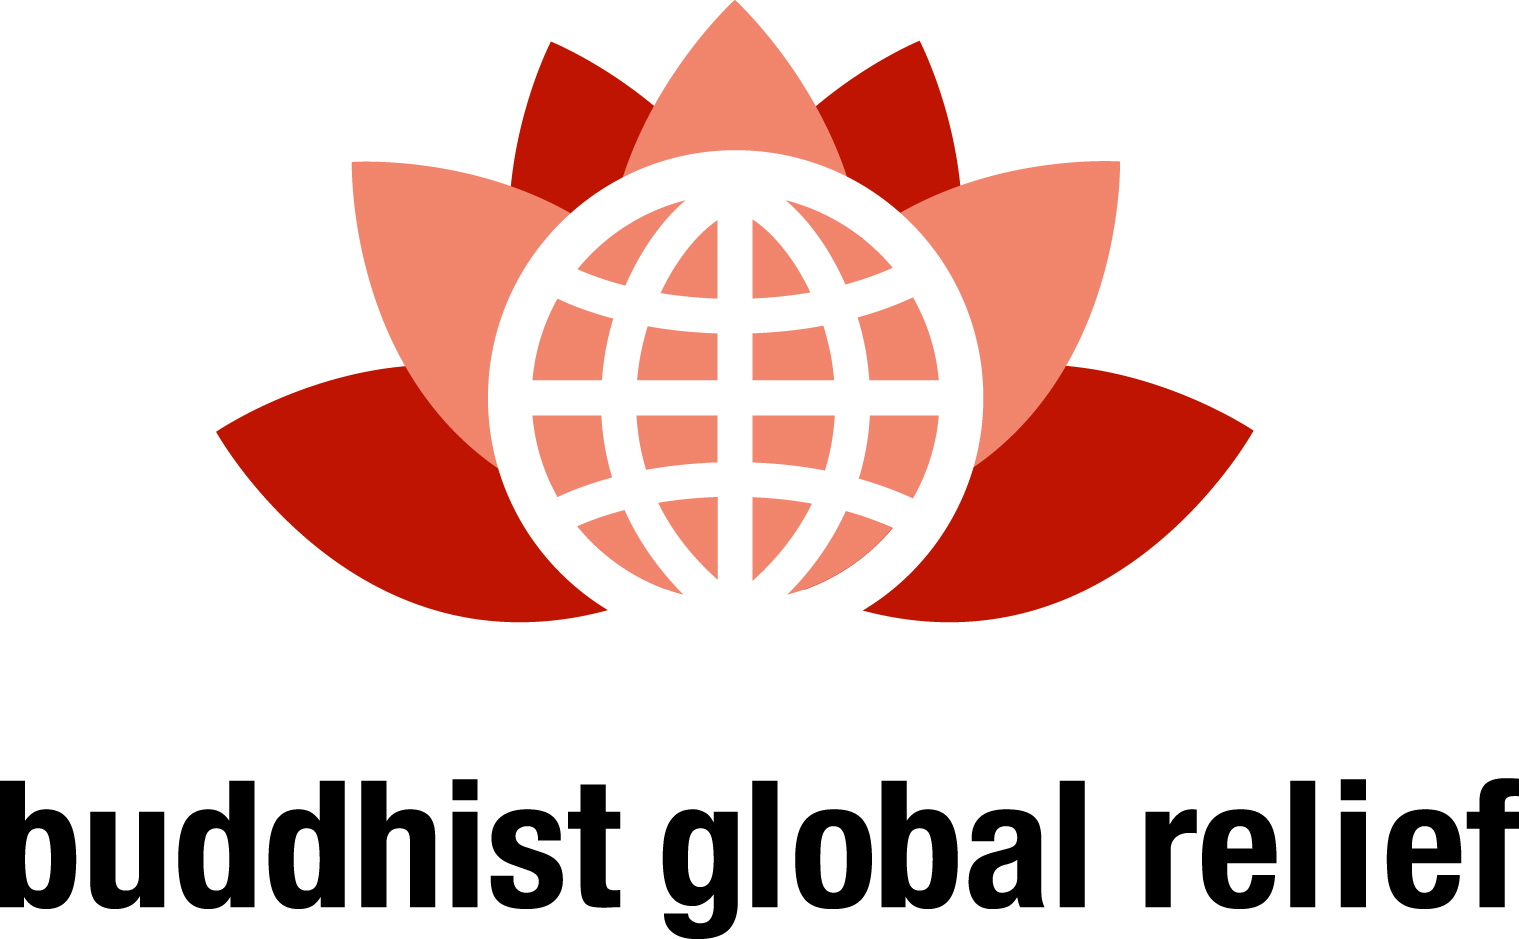 Buddhist Global Relief